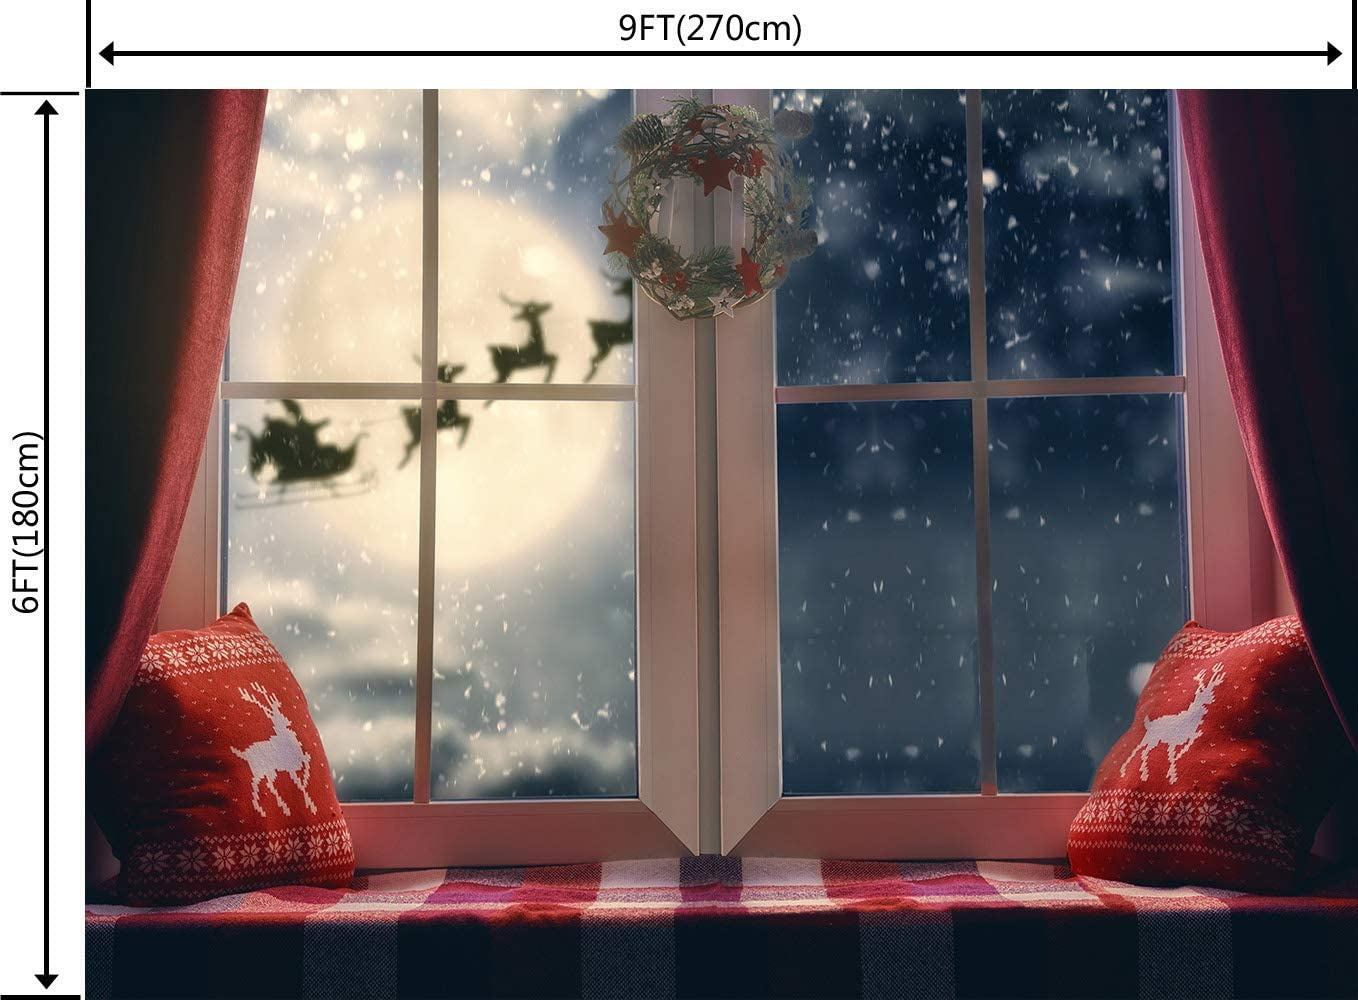 DULUDA 9X6FT Christmas Backdrop Winter Snowflake Pillow Window Sill Moon Reindeer Santa Garland Wreath Holiday Family Party Kids Photography Background Decoration Photo Studio Props WXL49B